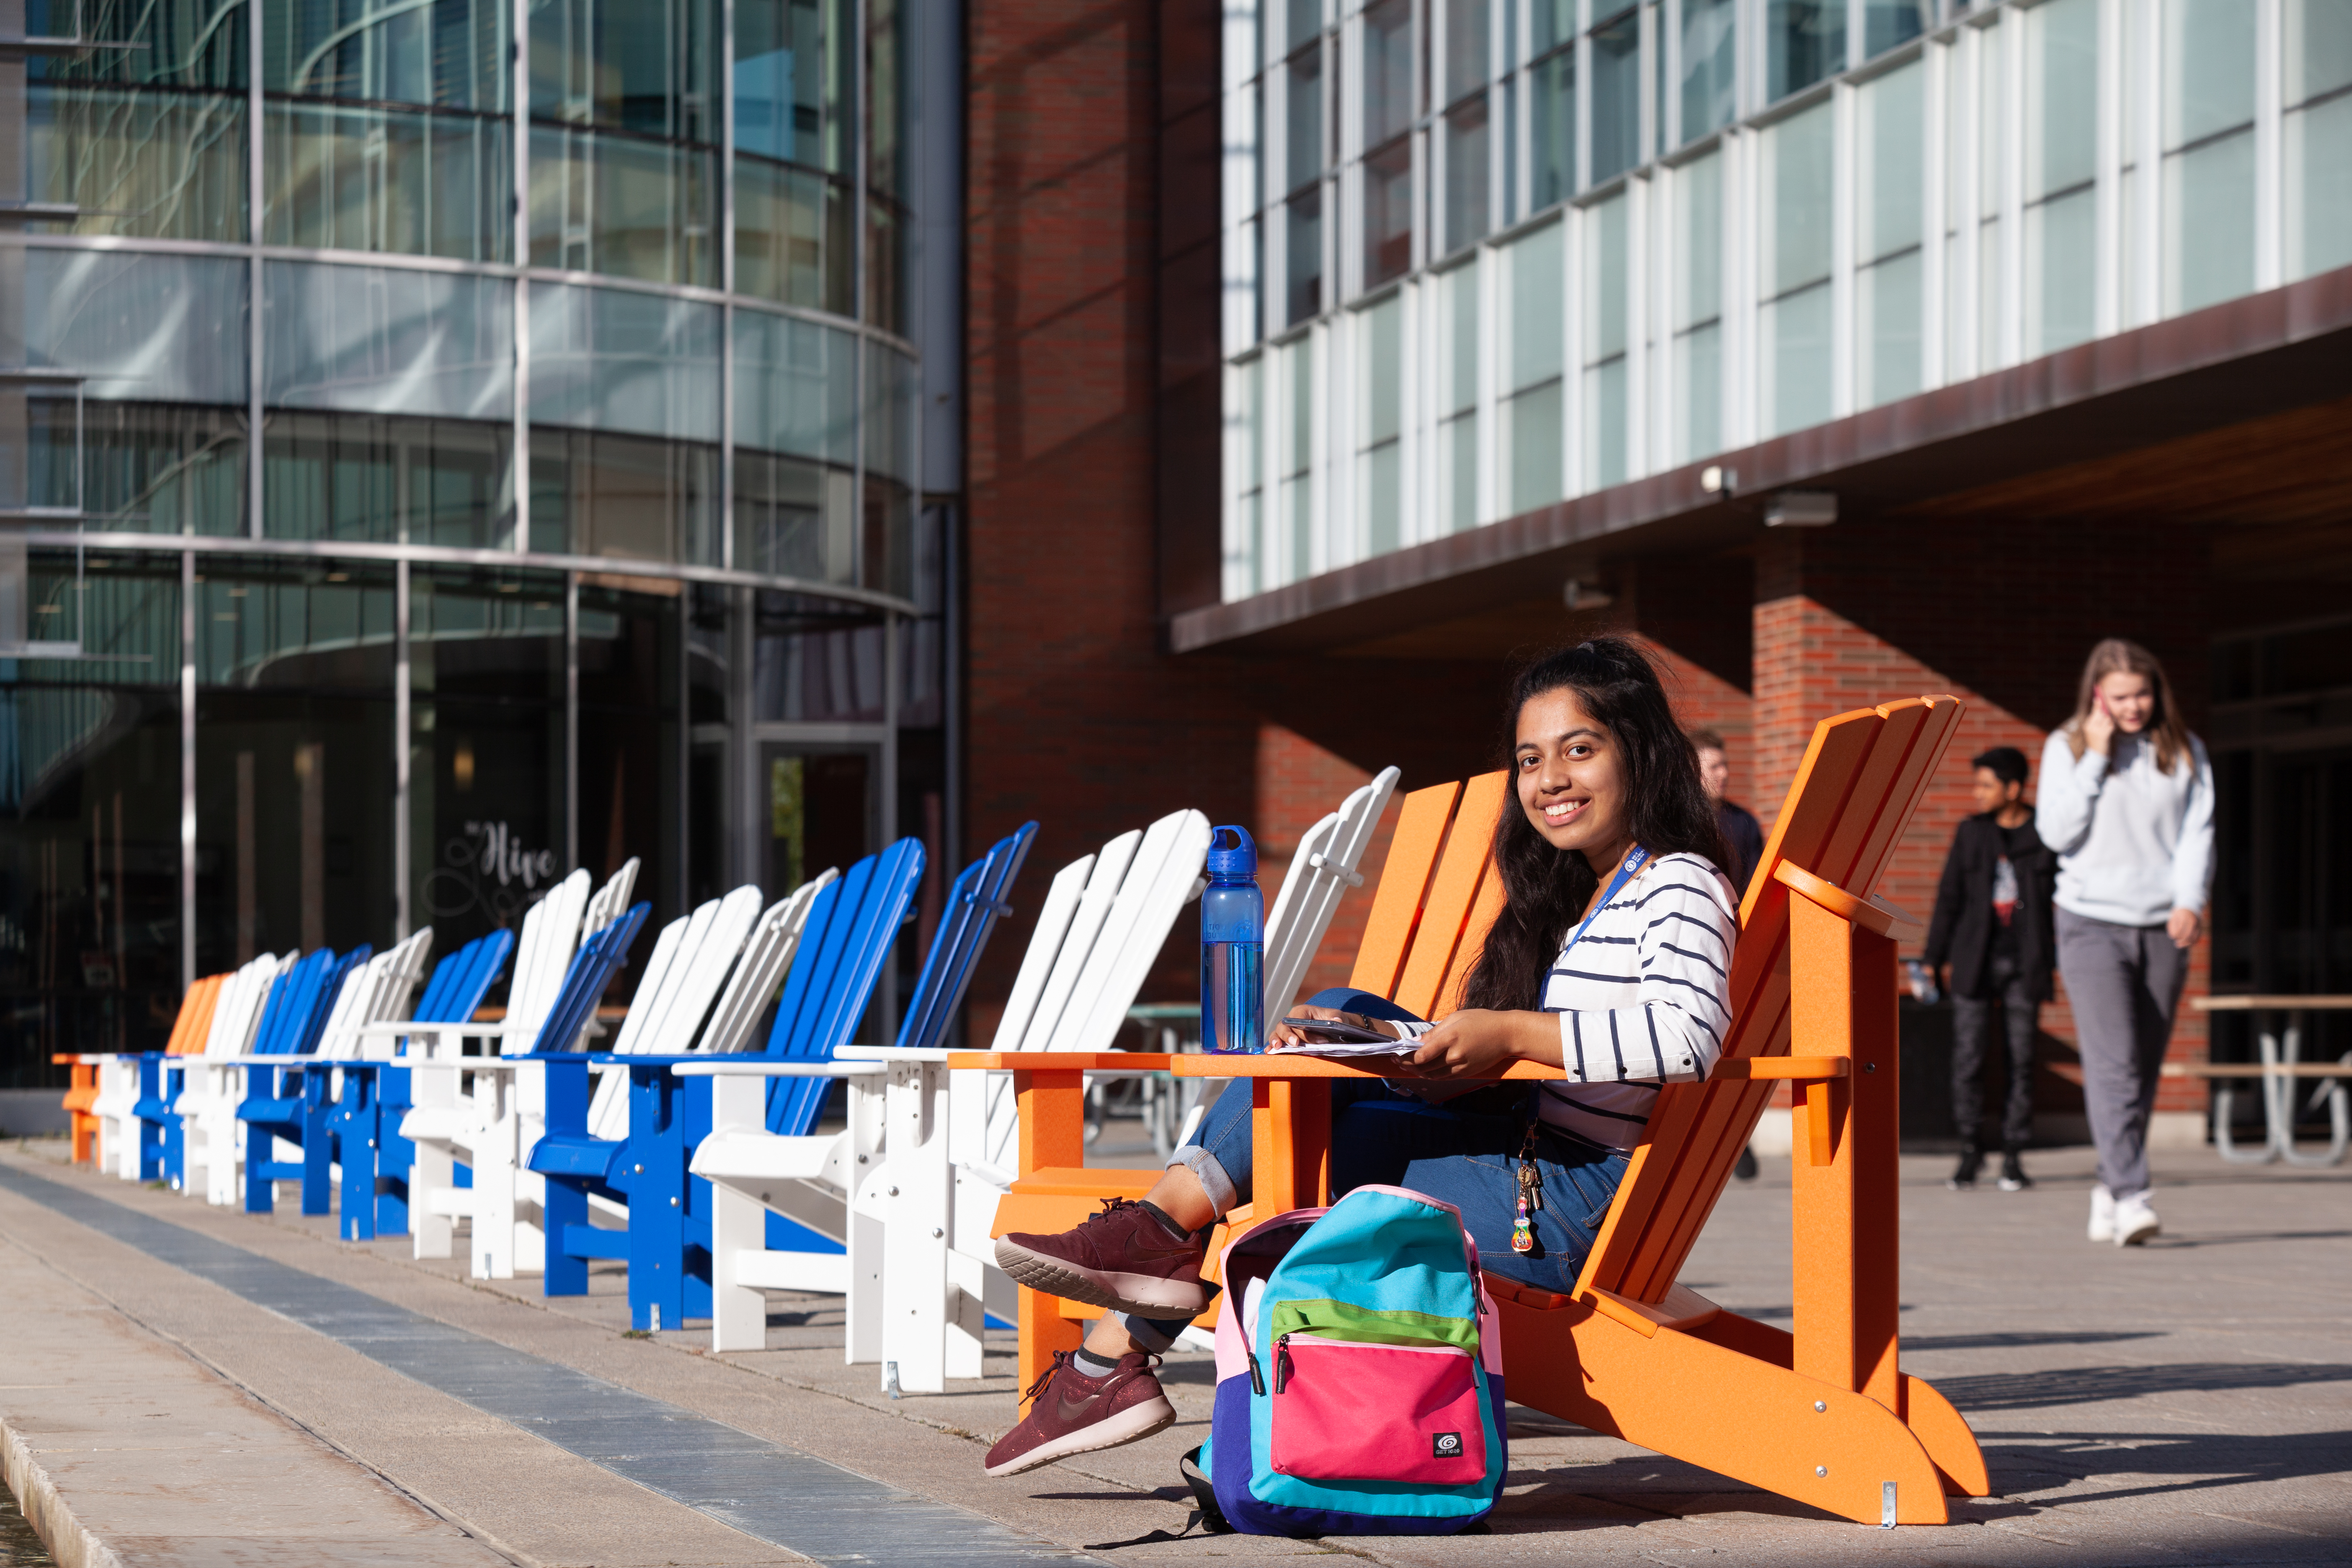 student sitting in muskoka chairs outside the library